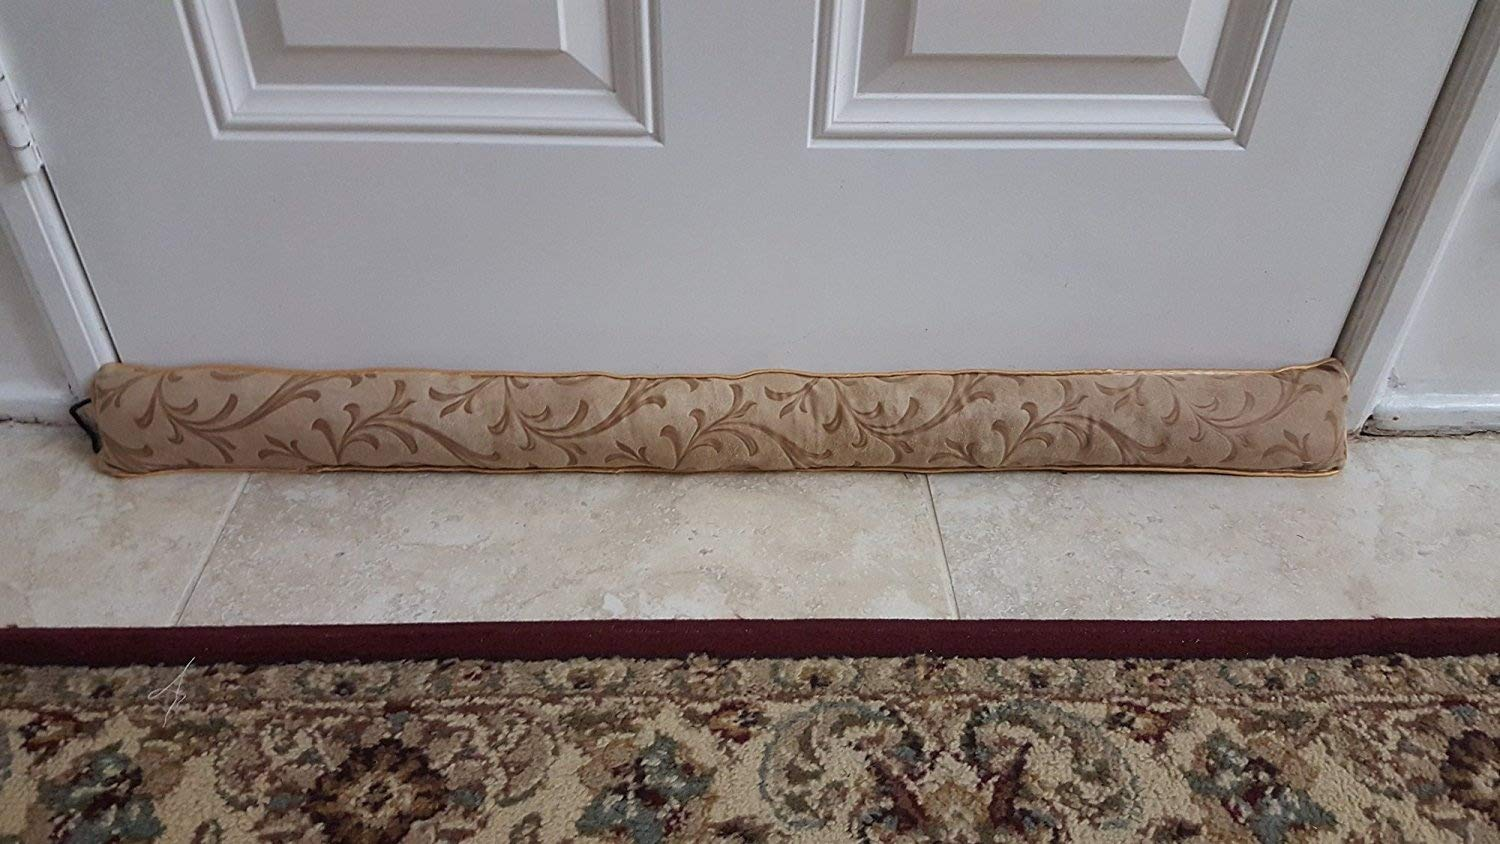 Monikas Marketplace Handmade 37-Inch Under-Door Draft Stopper (1.4 lbs.) with Hanging Cord and Storage Bag, Brown 4335414256